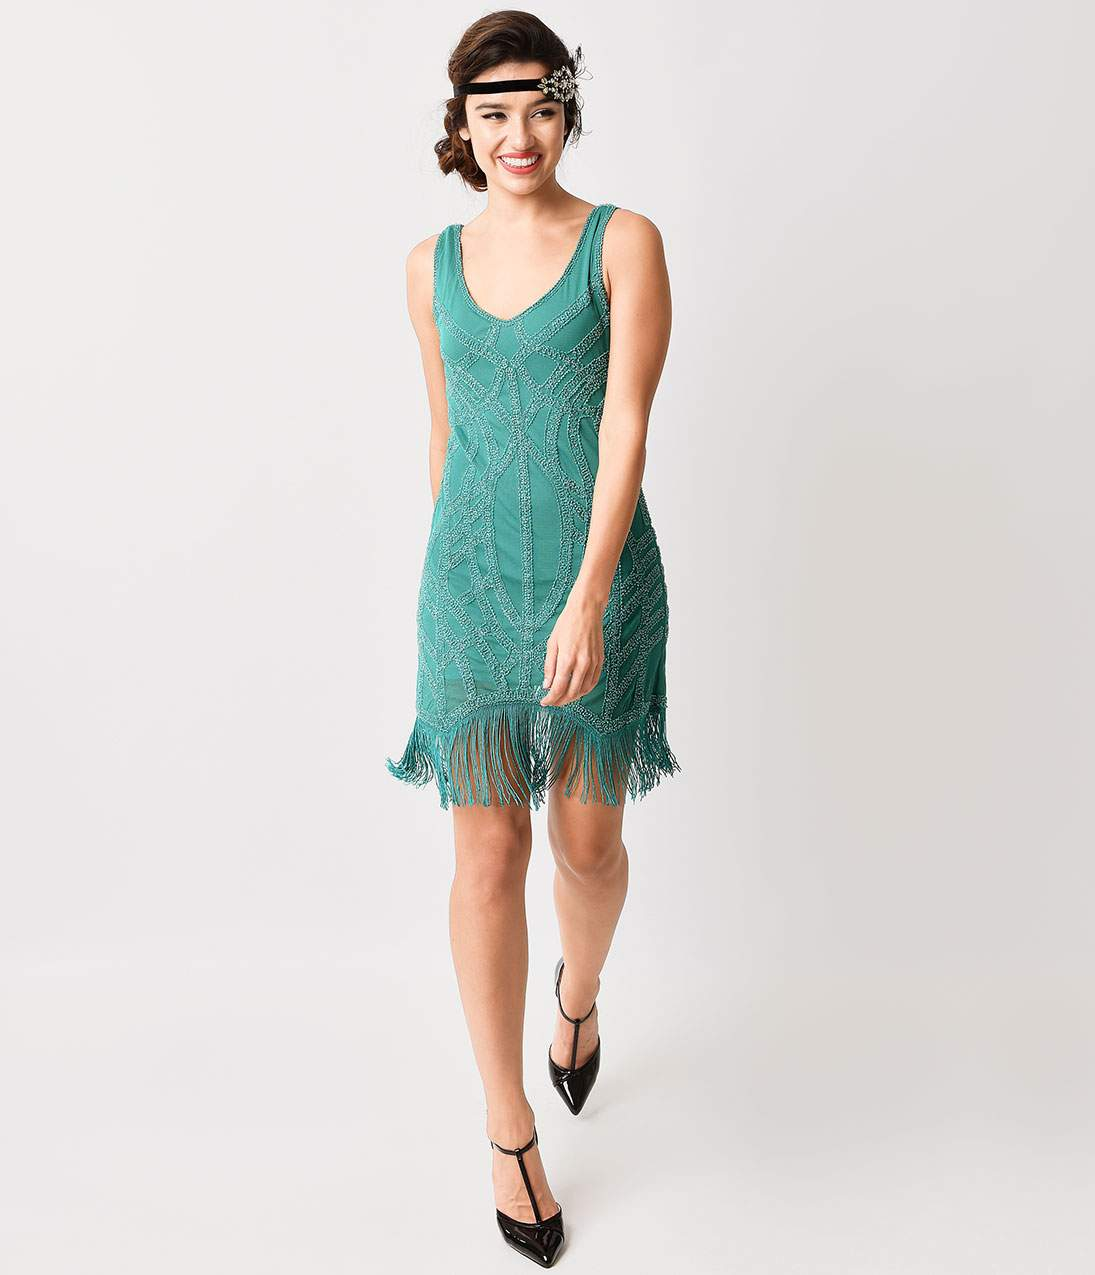 1920s Evening Dresses & Formal Gowns 1920S Style Teal Green Beaded Fringe Flapper Dress $78.00 AT vintagedancer.com